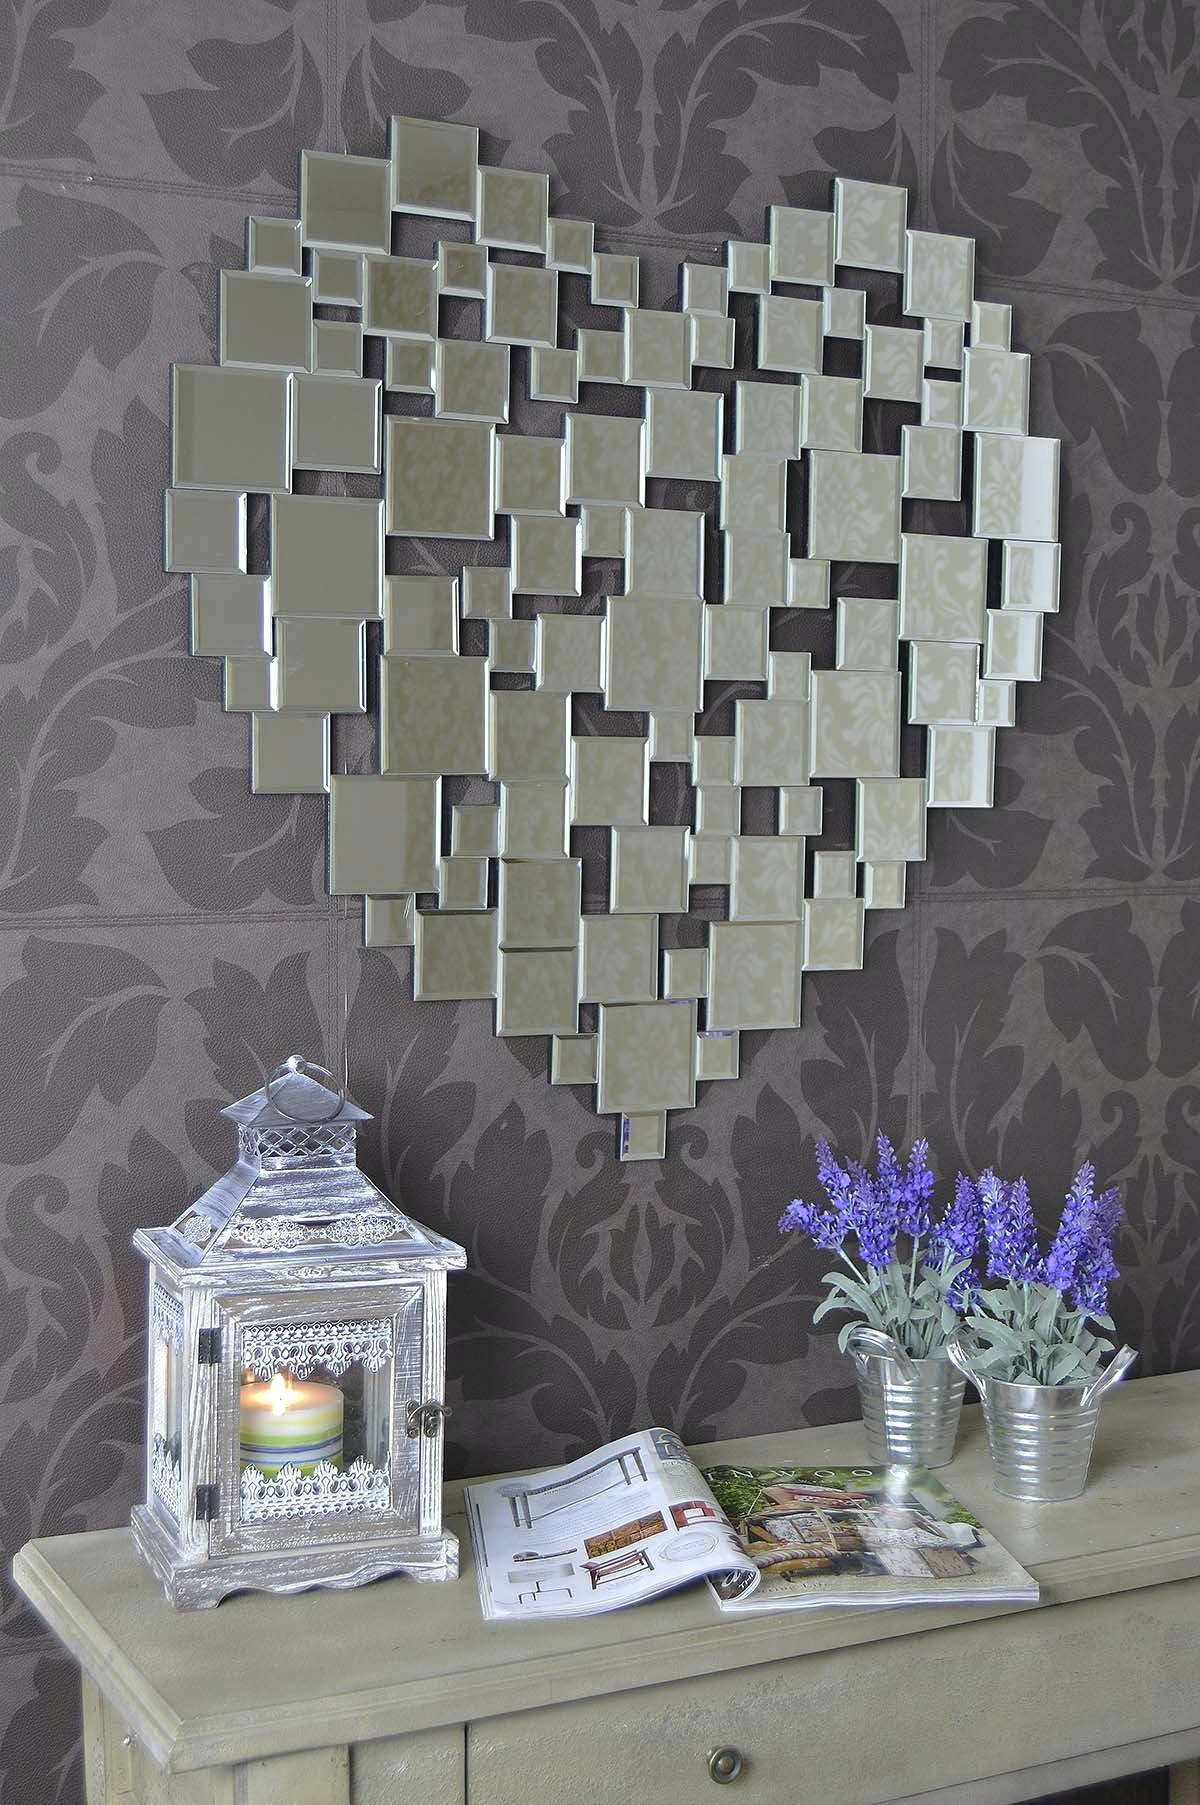 Heart Shape Venetian Wall Mirror 2Ft8 80Cm Lightbox Moreviewlarge with Venetian Wall Mirrors (Image 10 of 25)